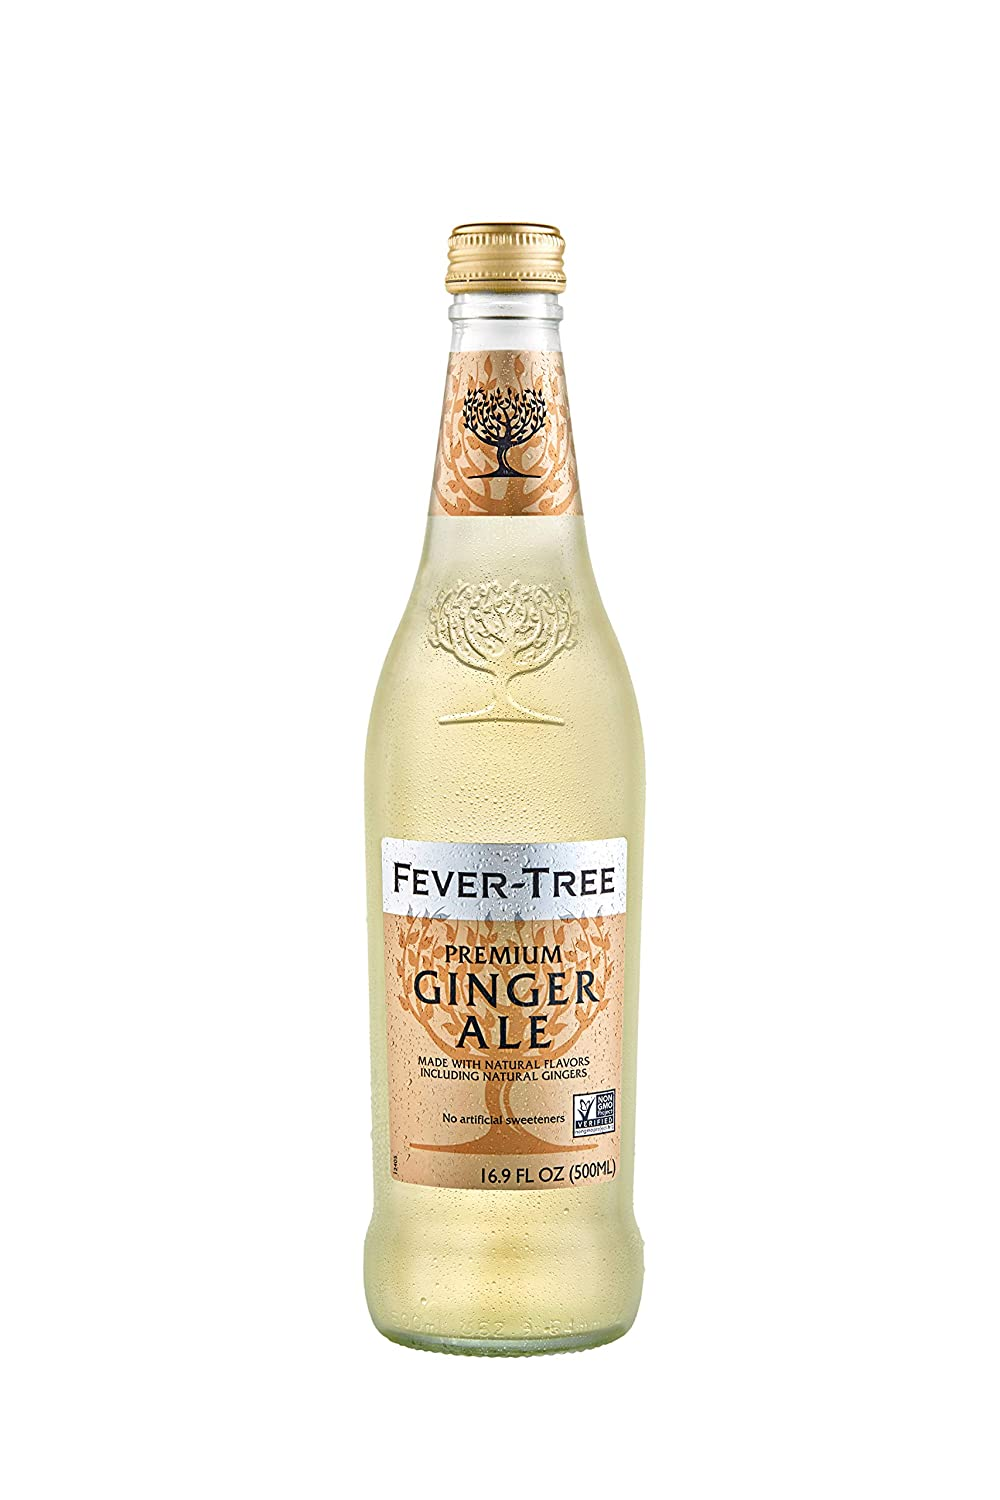 Fever-Tree Premium Ginger Ale Glass Bottles, No Artificial Sweeteners, Flavorings & Preservatives, 16.9 Fl Oz (Pack of 8)